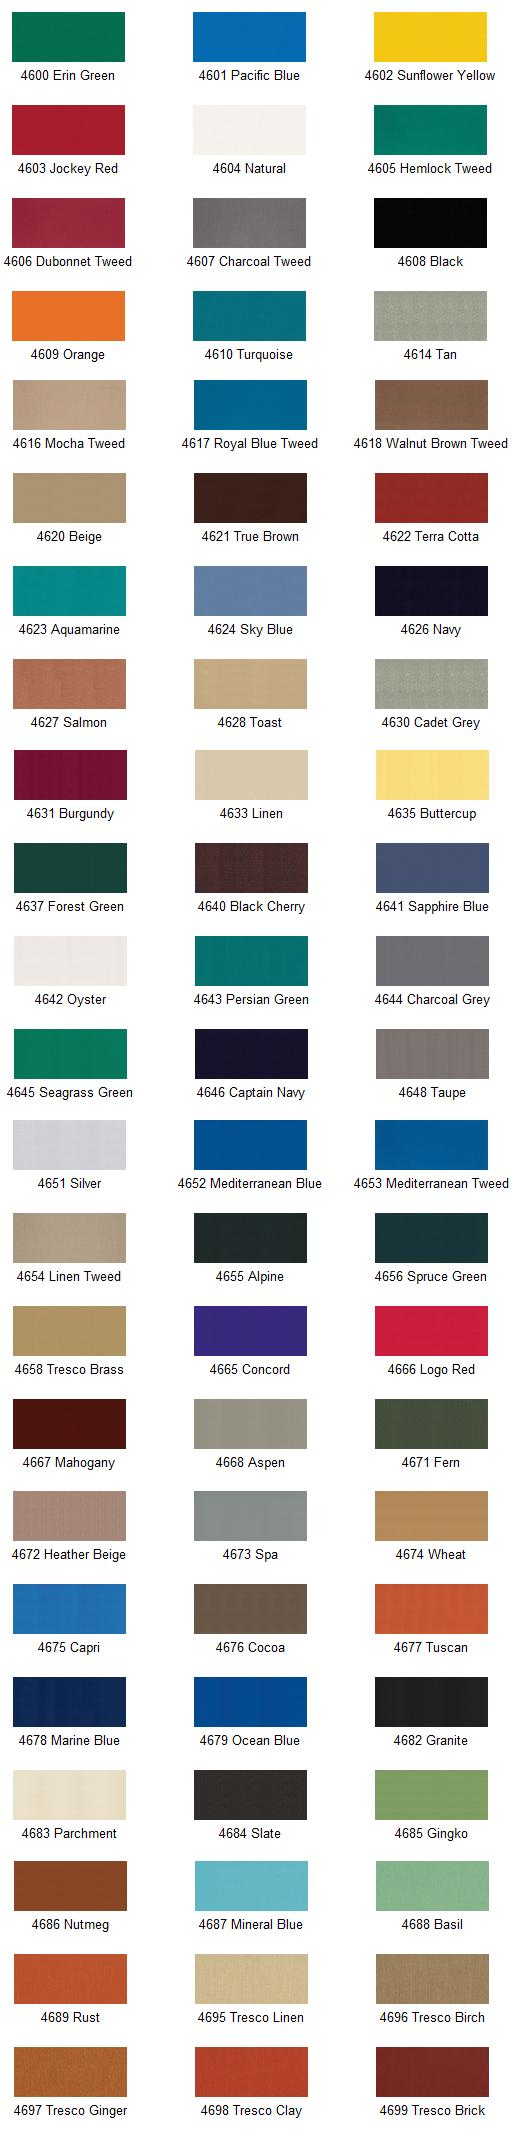 Sunbrella Awning Colors 28 Images Sunbrella Colors 28